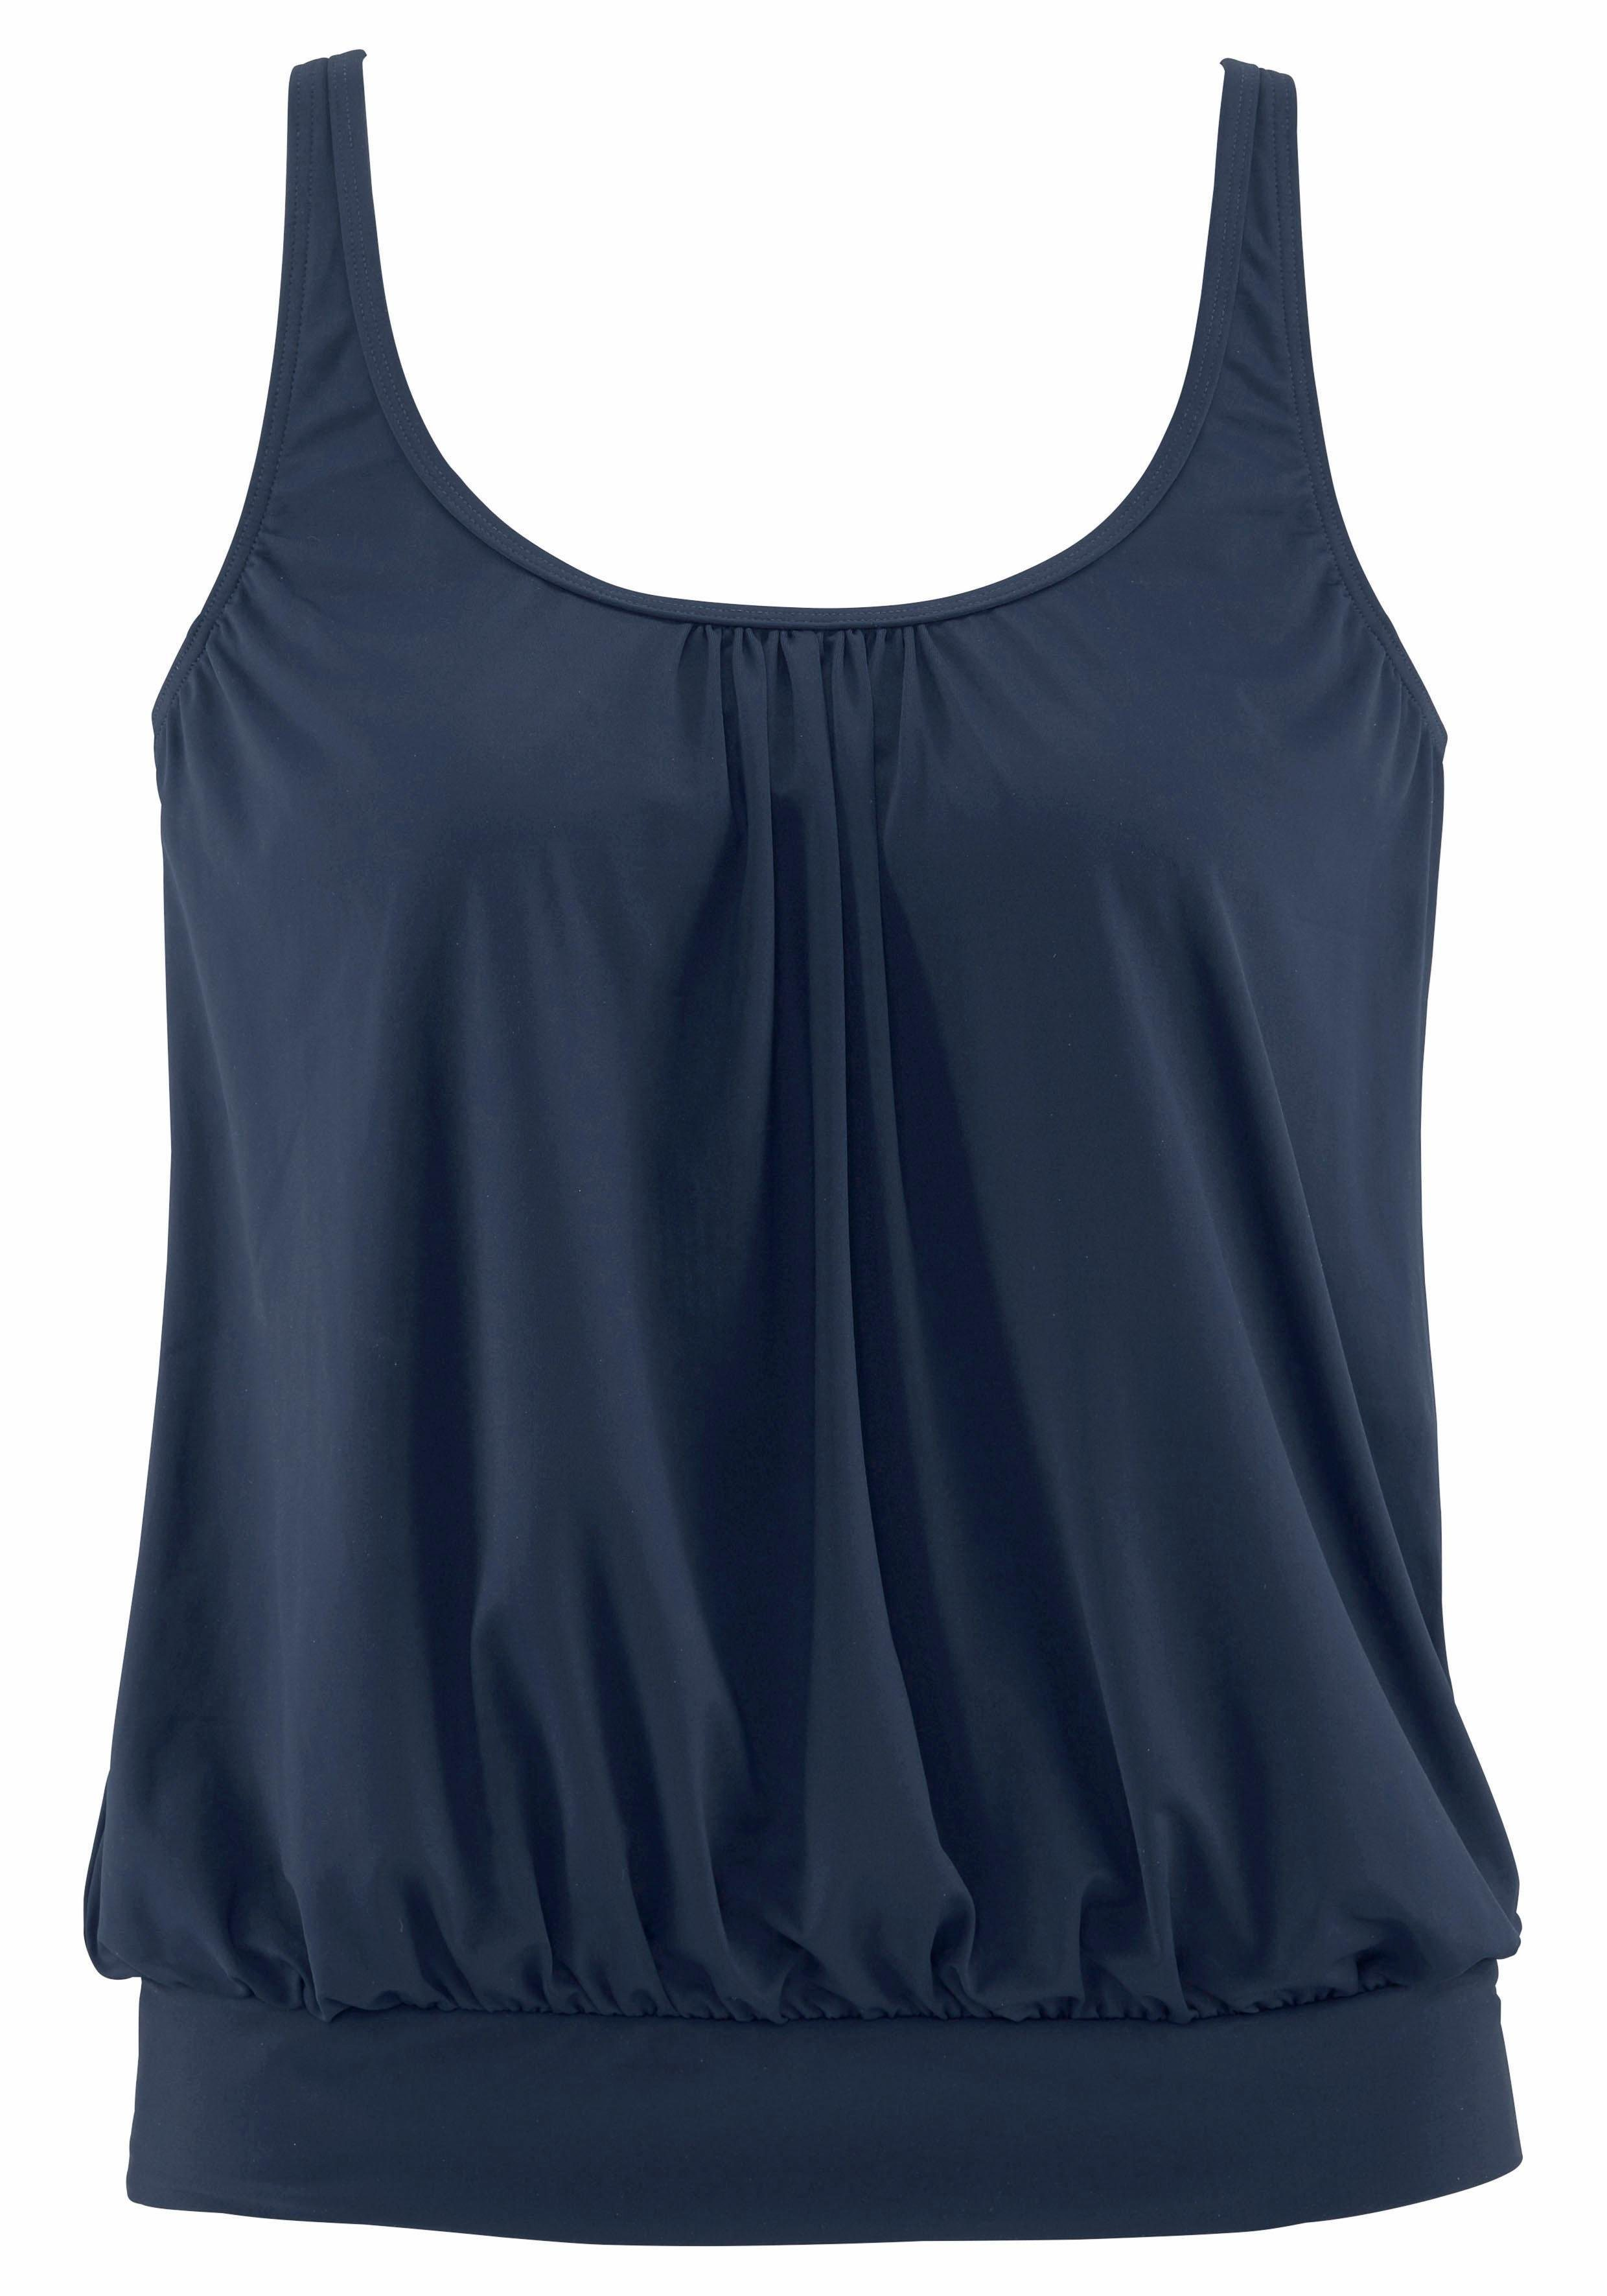 LASCANA Tankini-Top »Italy« in Oversize-Form | Bekleidung > Bademode > Tankinis | Cup | Lascana